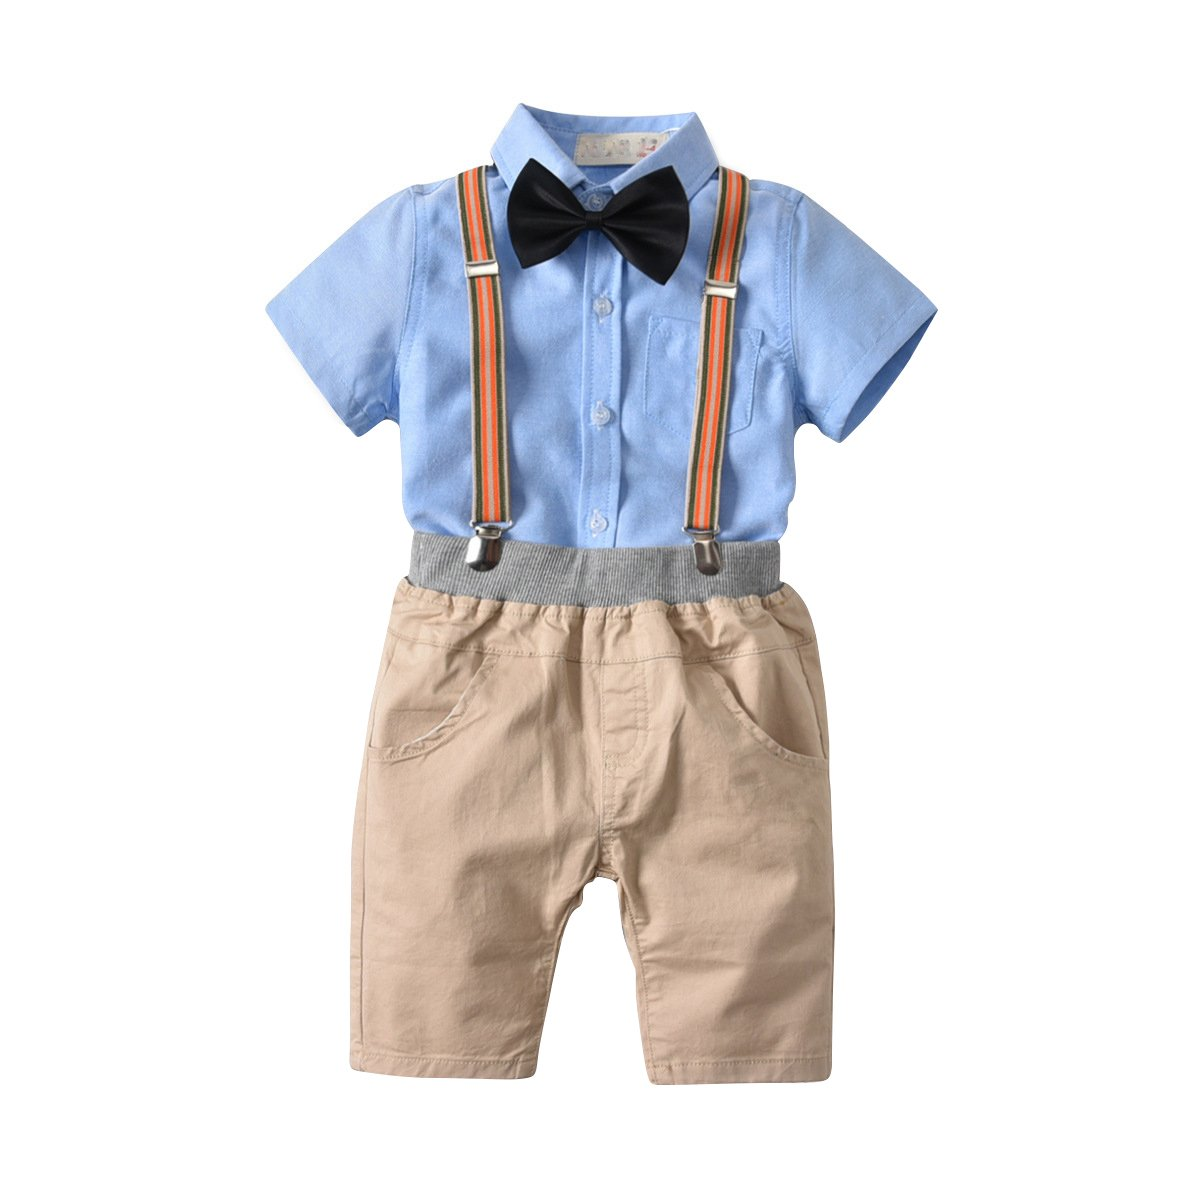 Kid Little Boy Gentleman Outfit Set Short Sleeve Shirt Bow Tie Clothing Set 18M